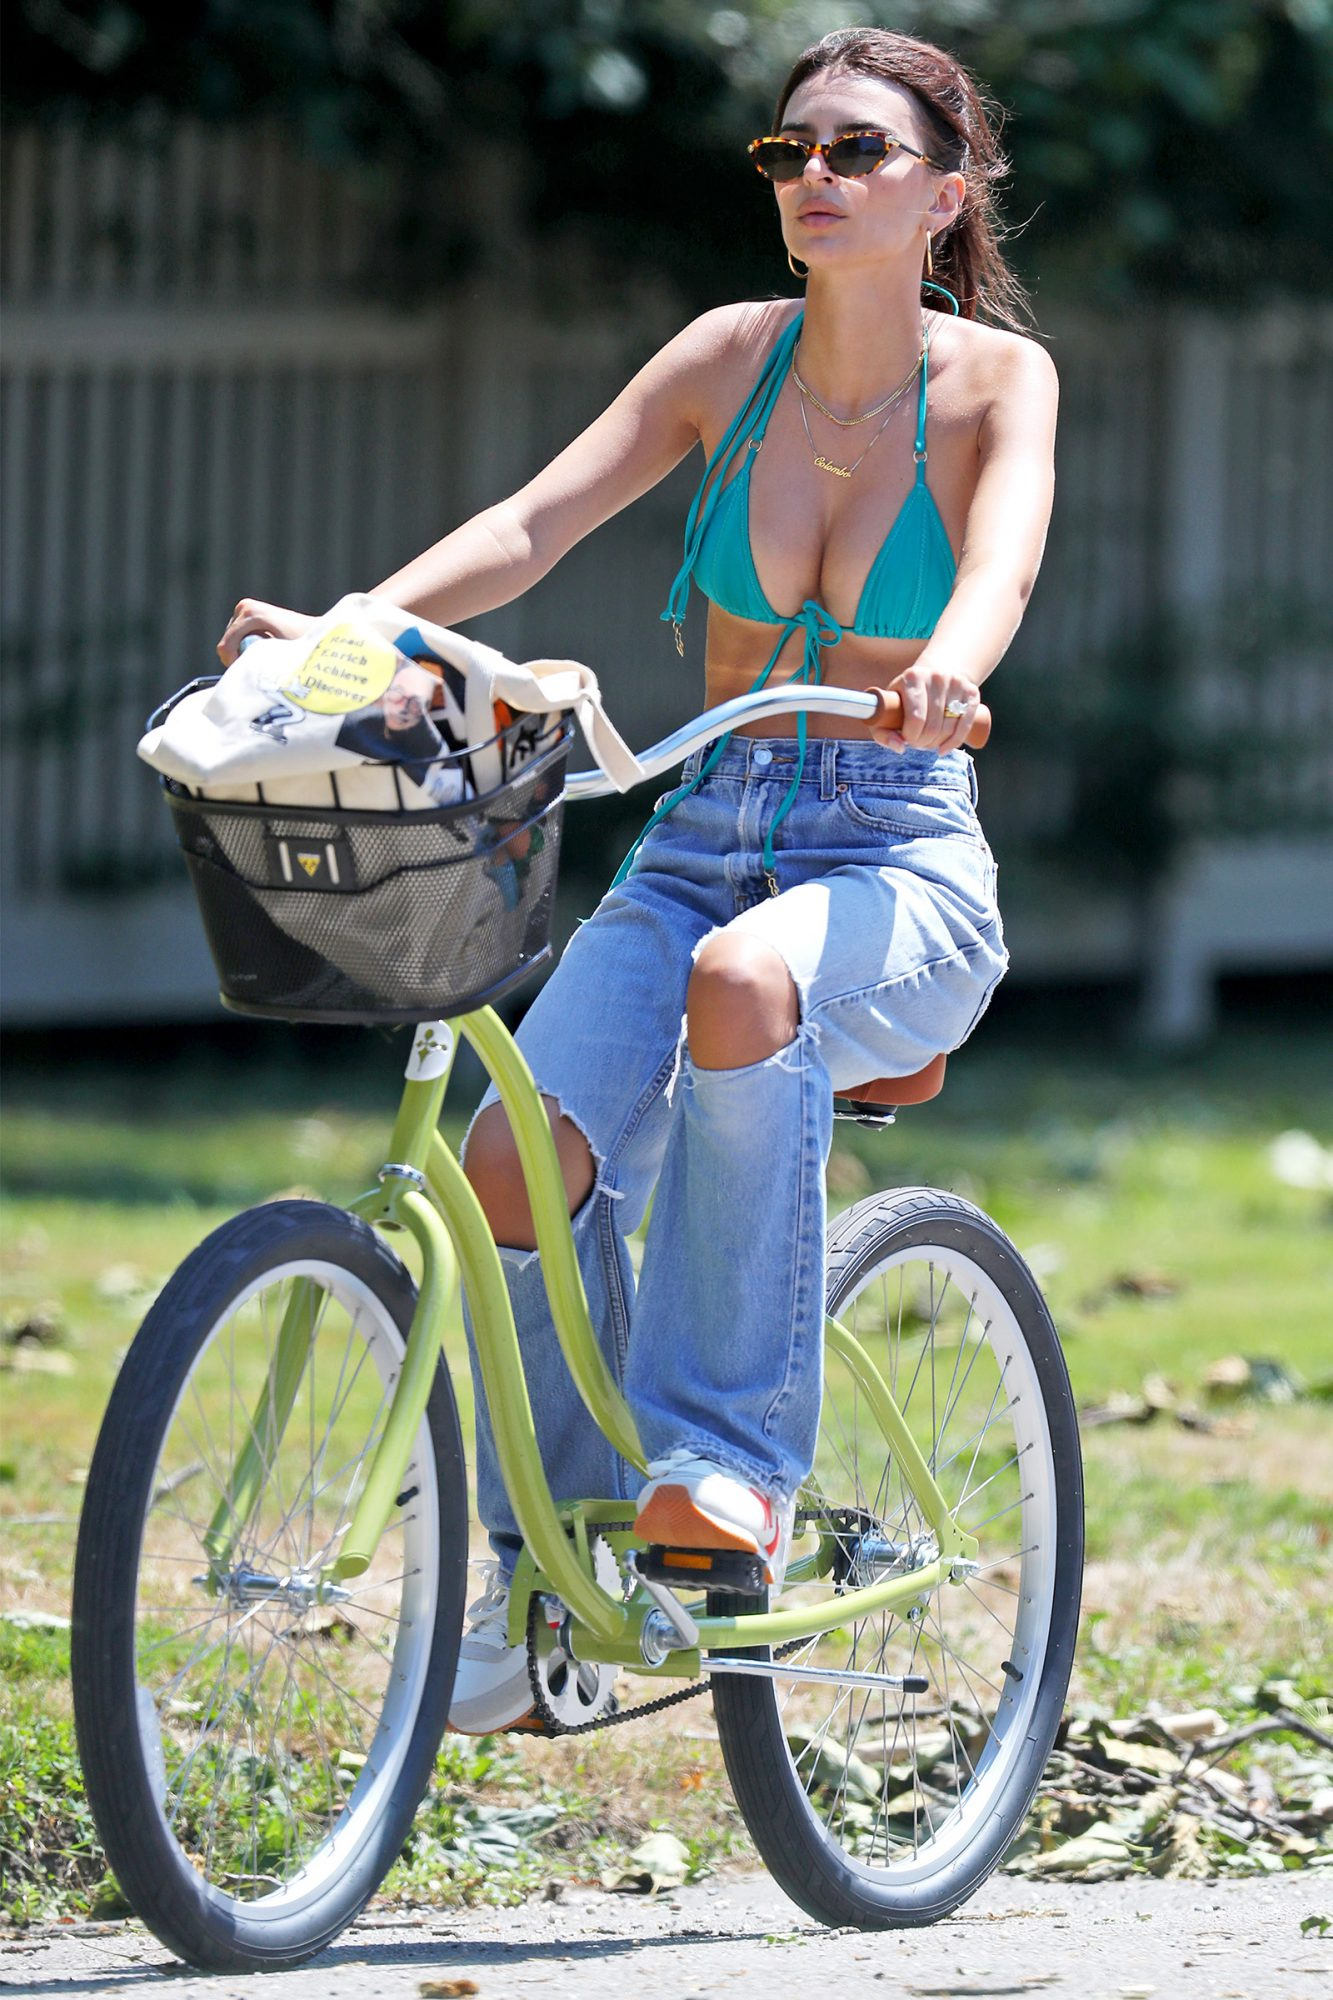 Emily Ratajkowski Rides Her Bike to The Beach in The Hamptons